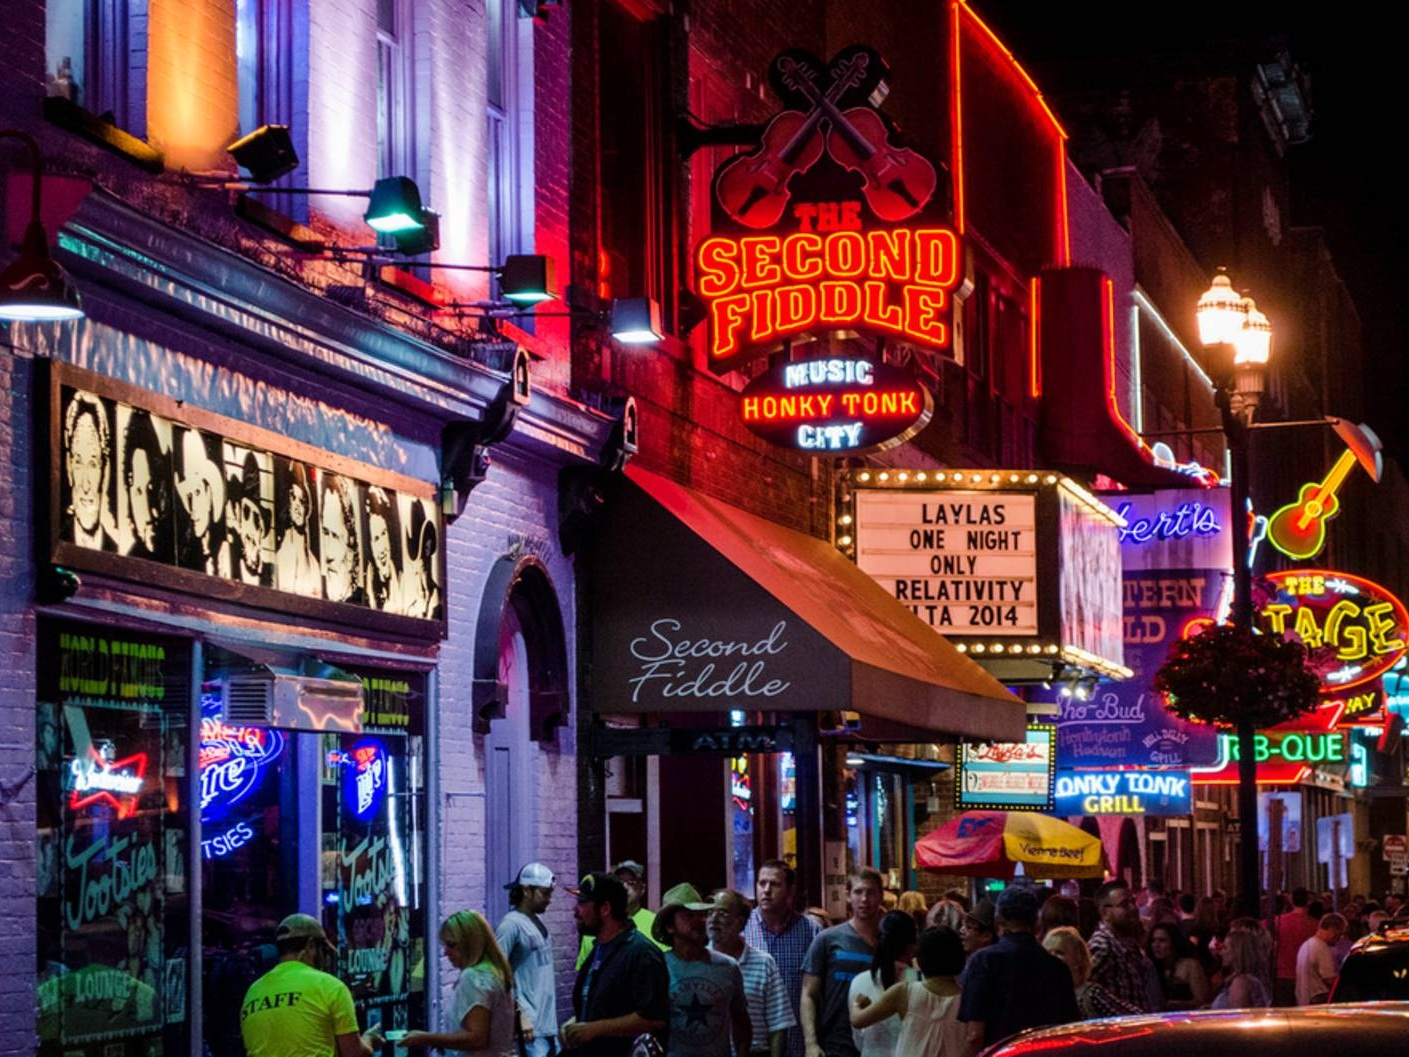 Broadway, Lined with Bars & Music venues